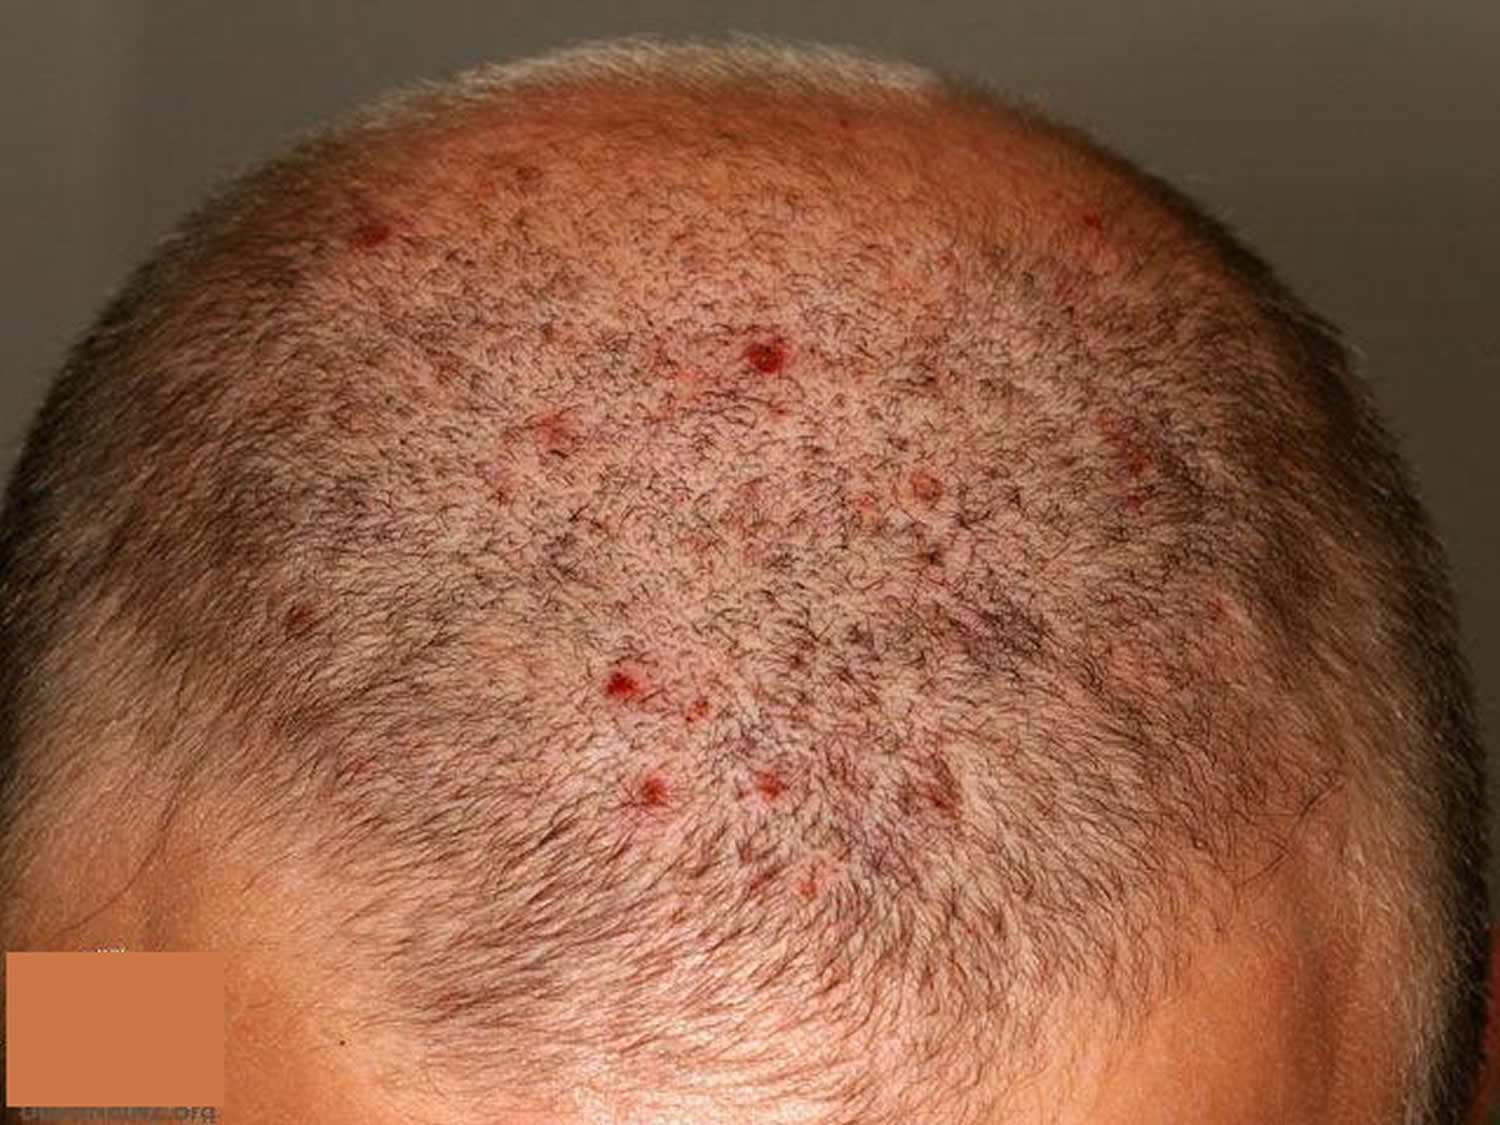 Folliculitis Causes Signs Symptoms How To Get Rid Of